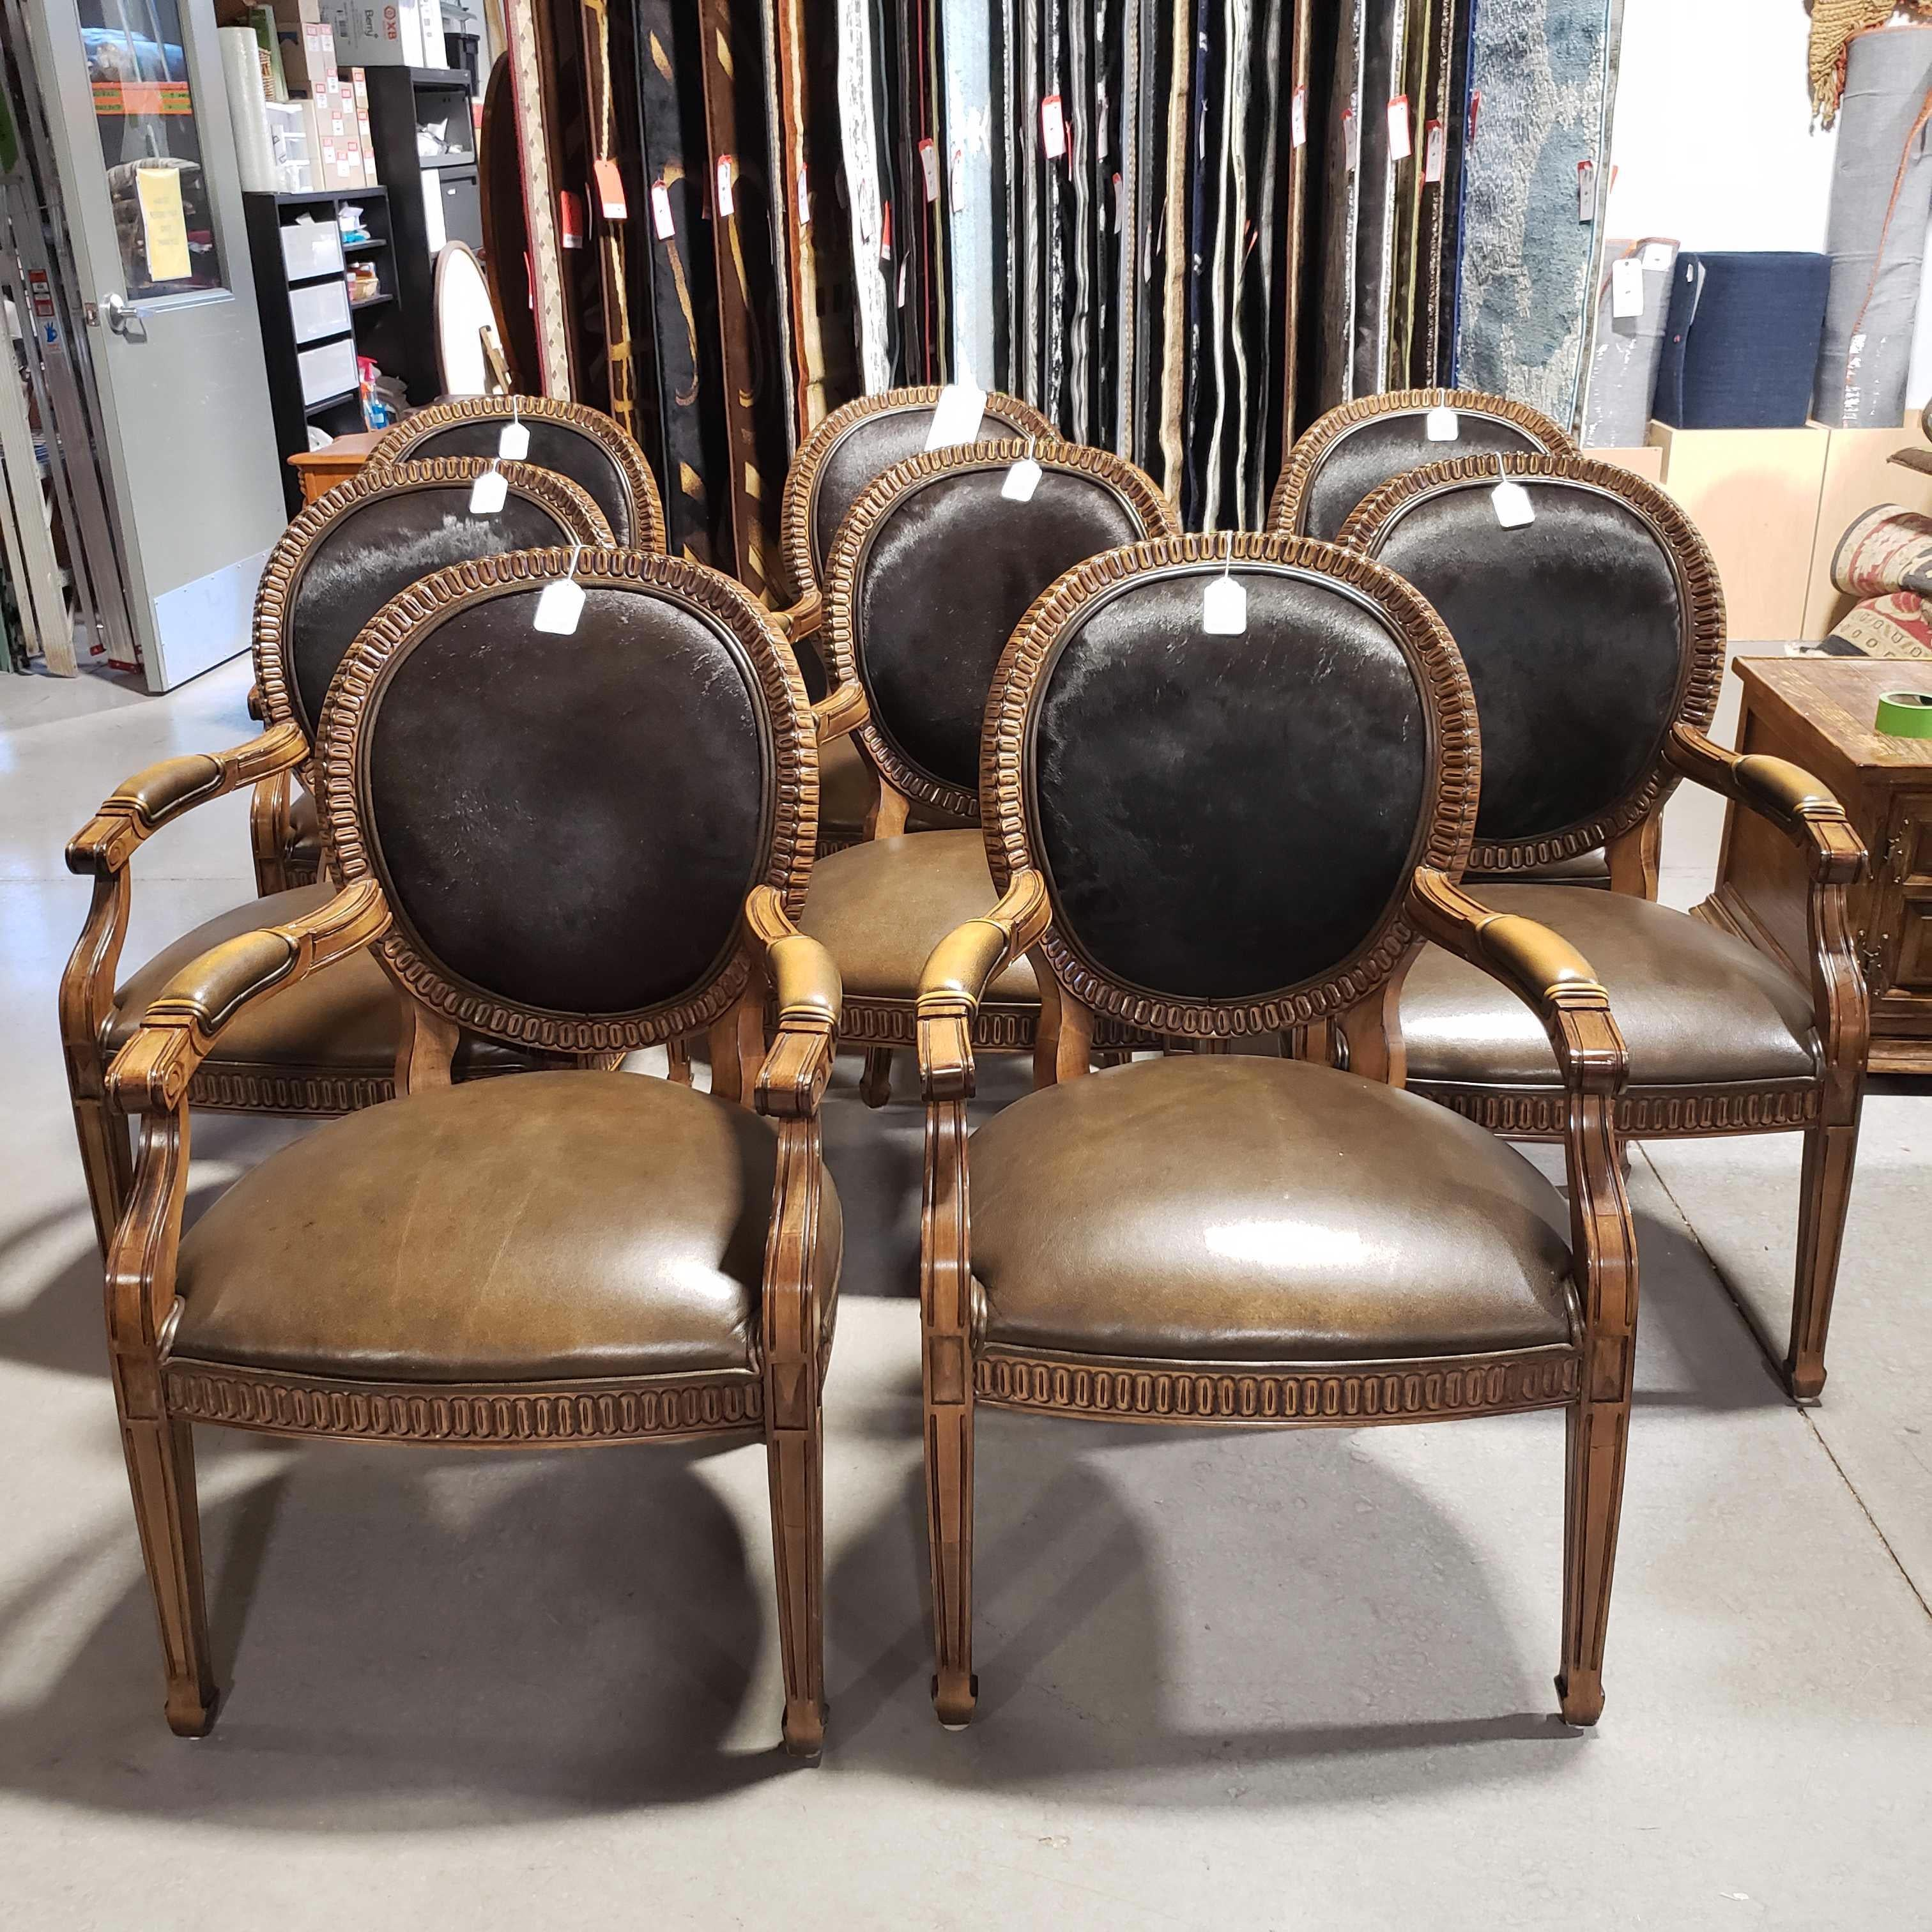 SET of 8 Kreiss Collection Oval Back Cowhide Leather & Carved Wood Dining Arm Chairs